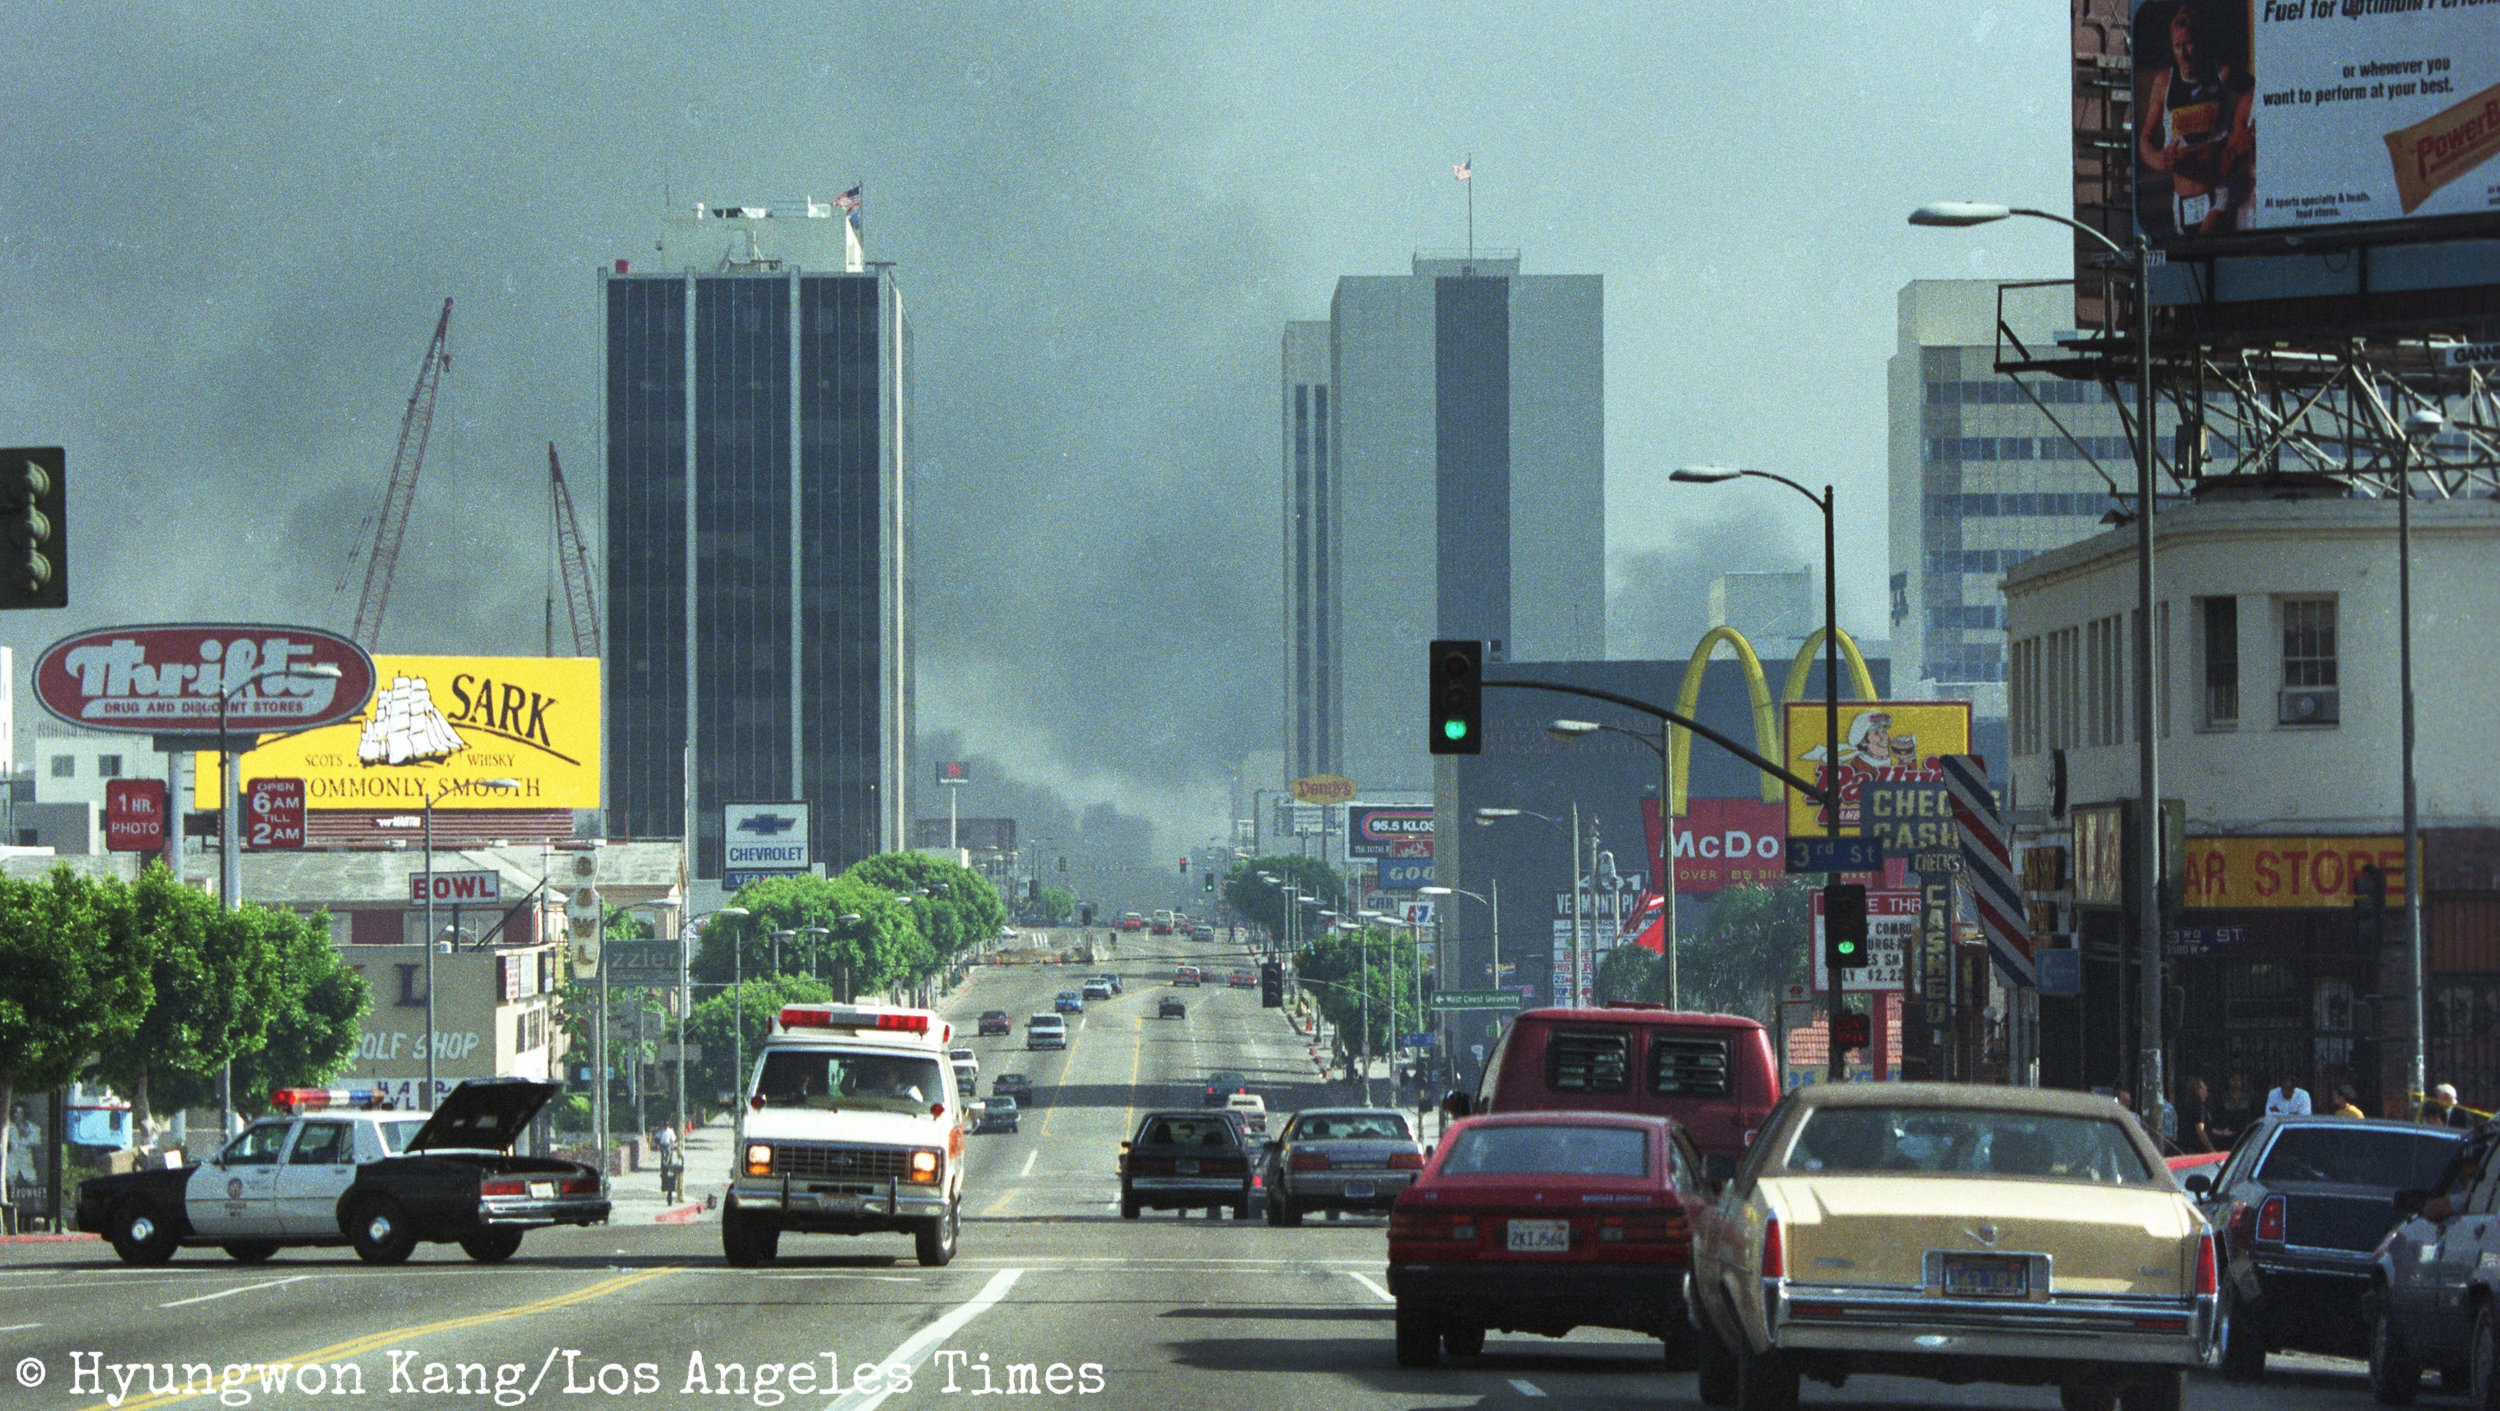 Koreatown burns